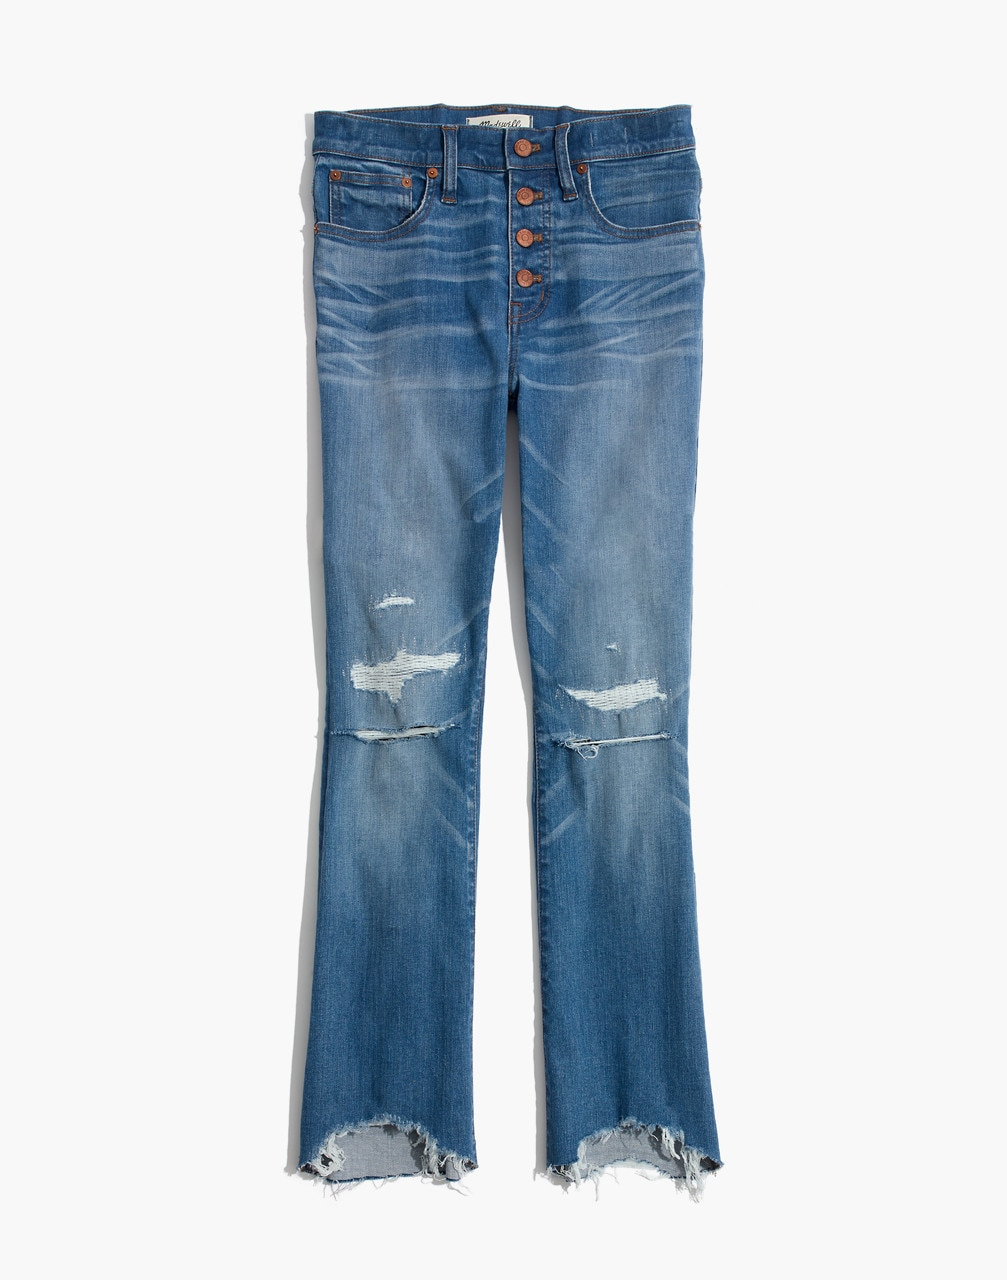 distressed jeans, cropped jeans, demi boot, frayed jeans, madewell